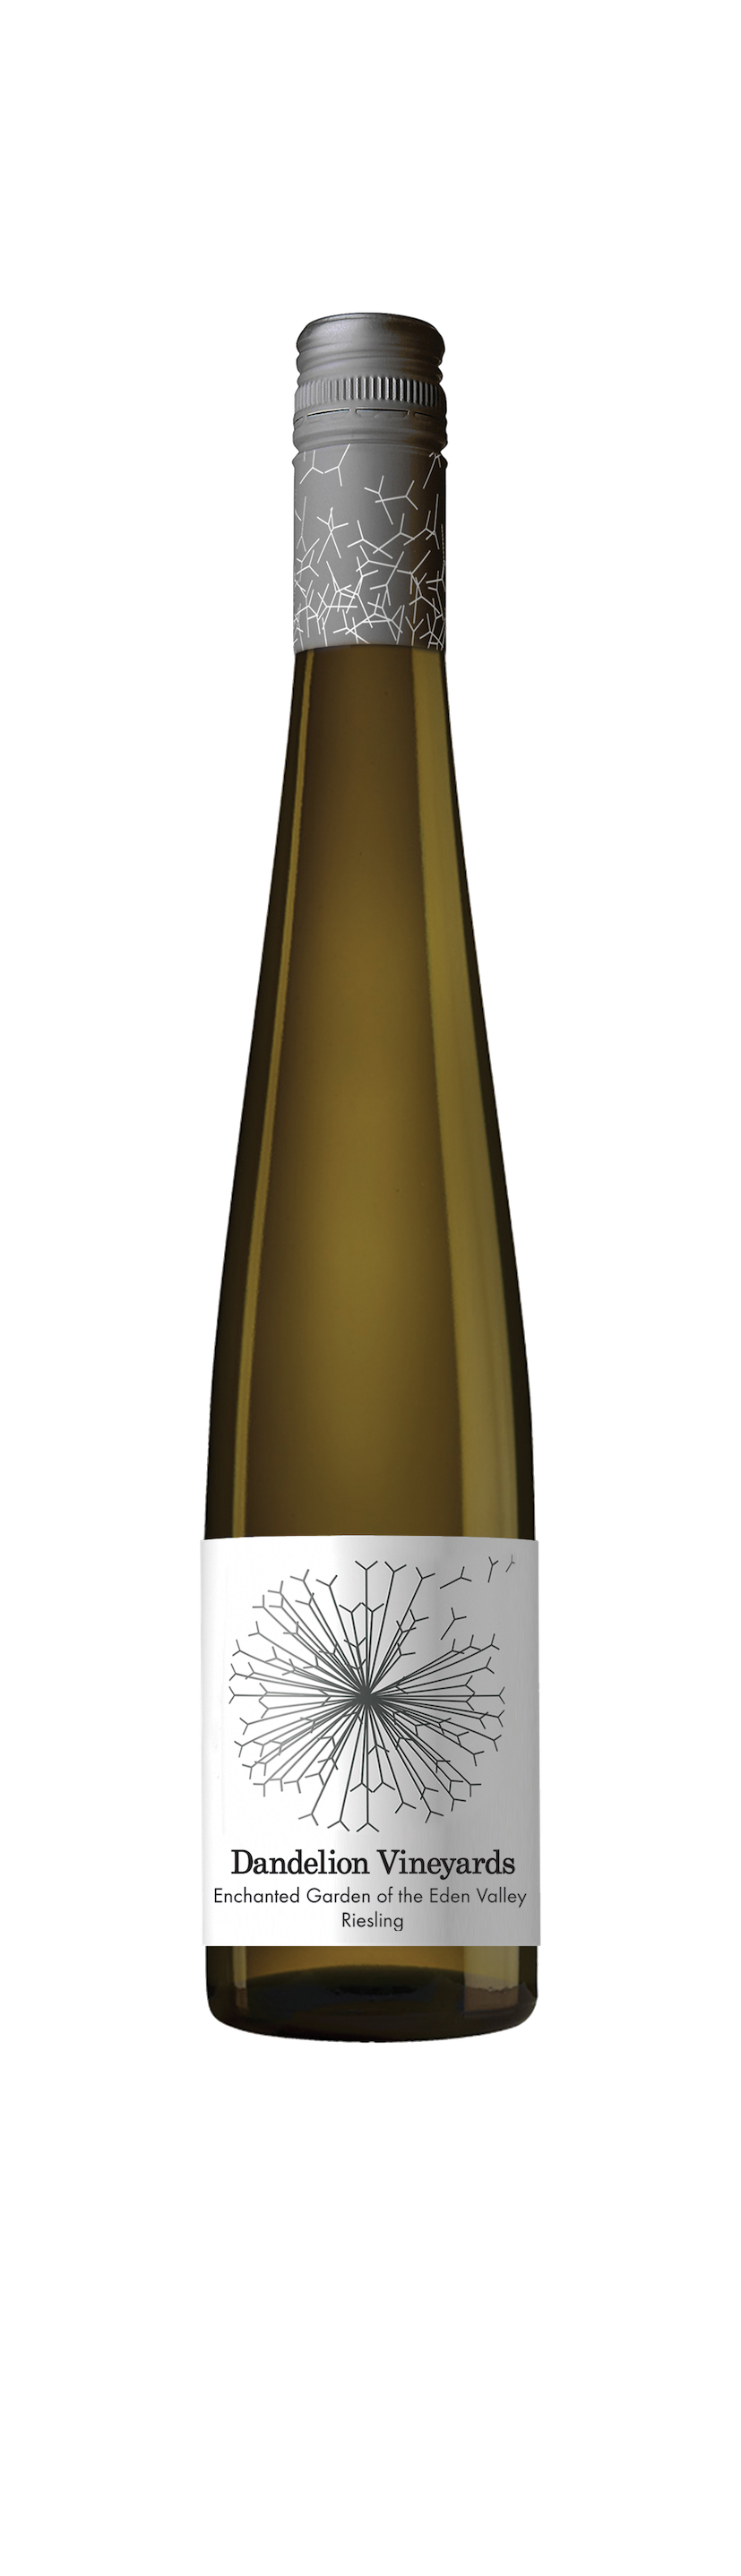 Enchanted Garden of the Eden Valley Riesling 2018 (375ml)